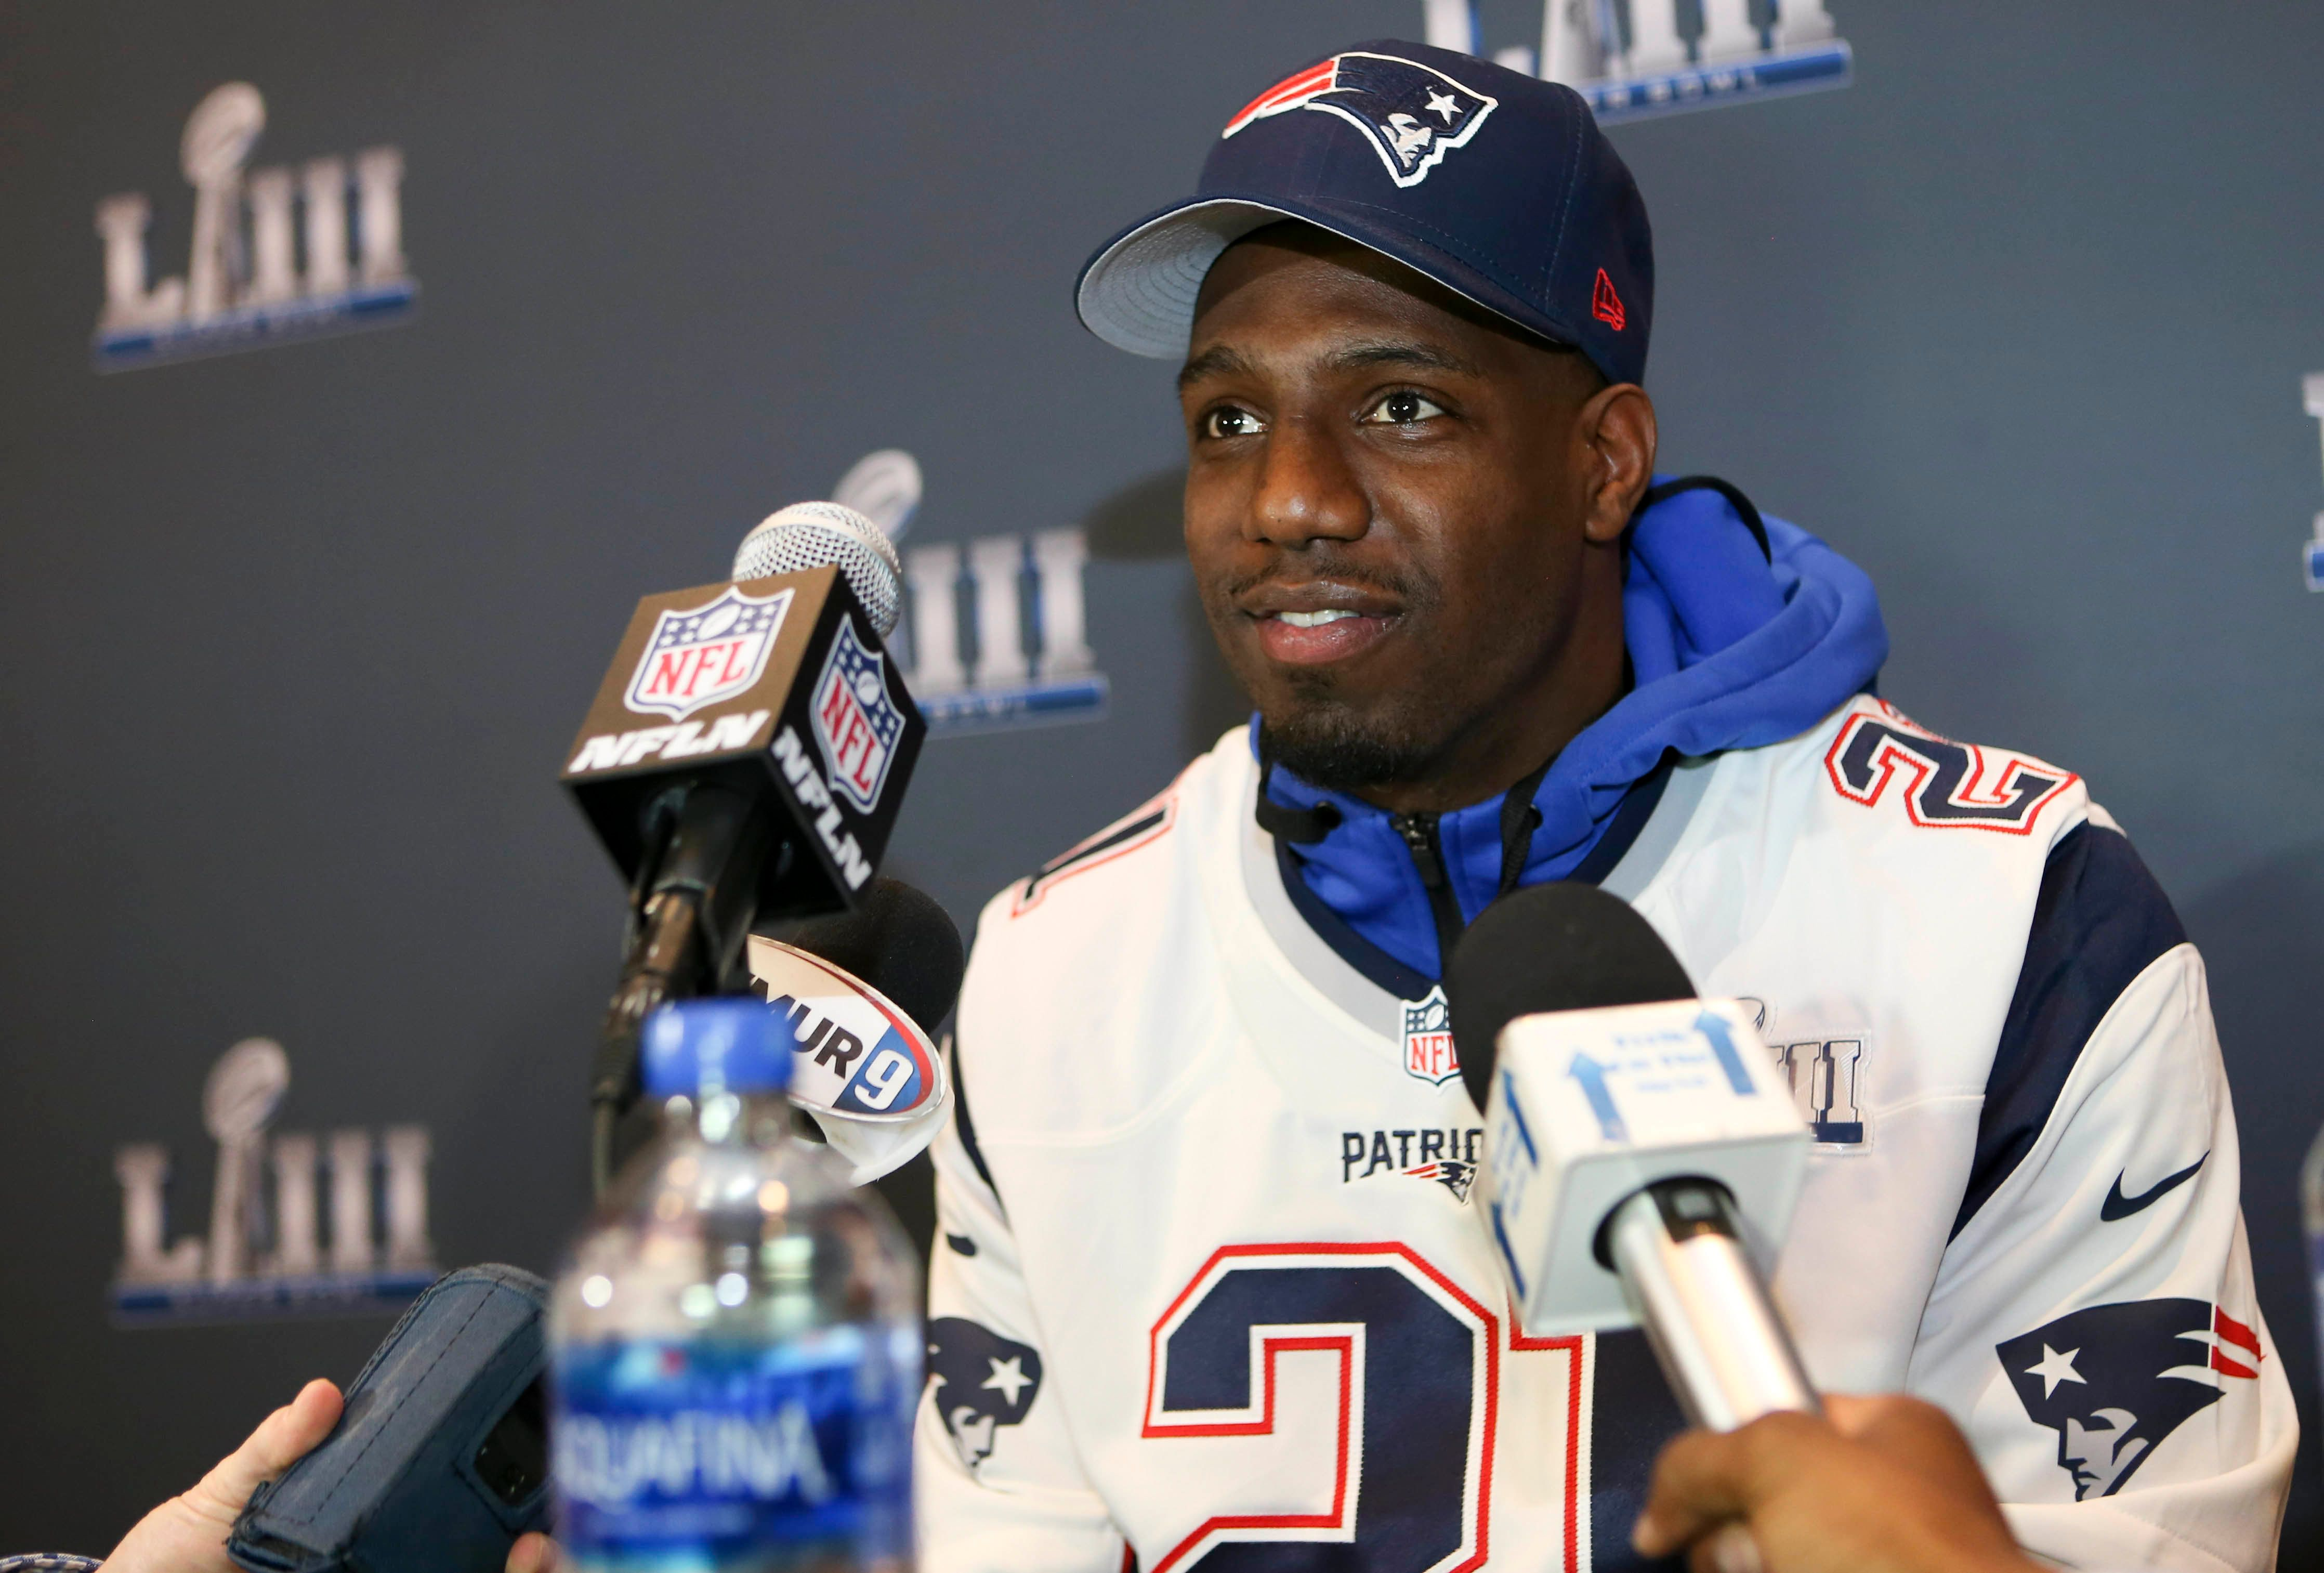 Jan 31, 2019; Atlanta, GA, USA; New England Patriots strong safety Duron Harmon (21) addresses the media at a press conference for Super Bowl LIII at Hyatt Regency Atlanta. Mandatory Credit: Brett Davis-USA TODAY Sports